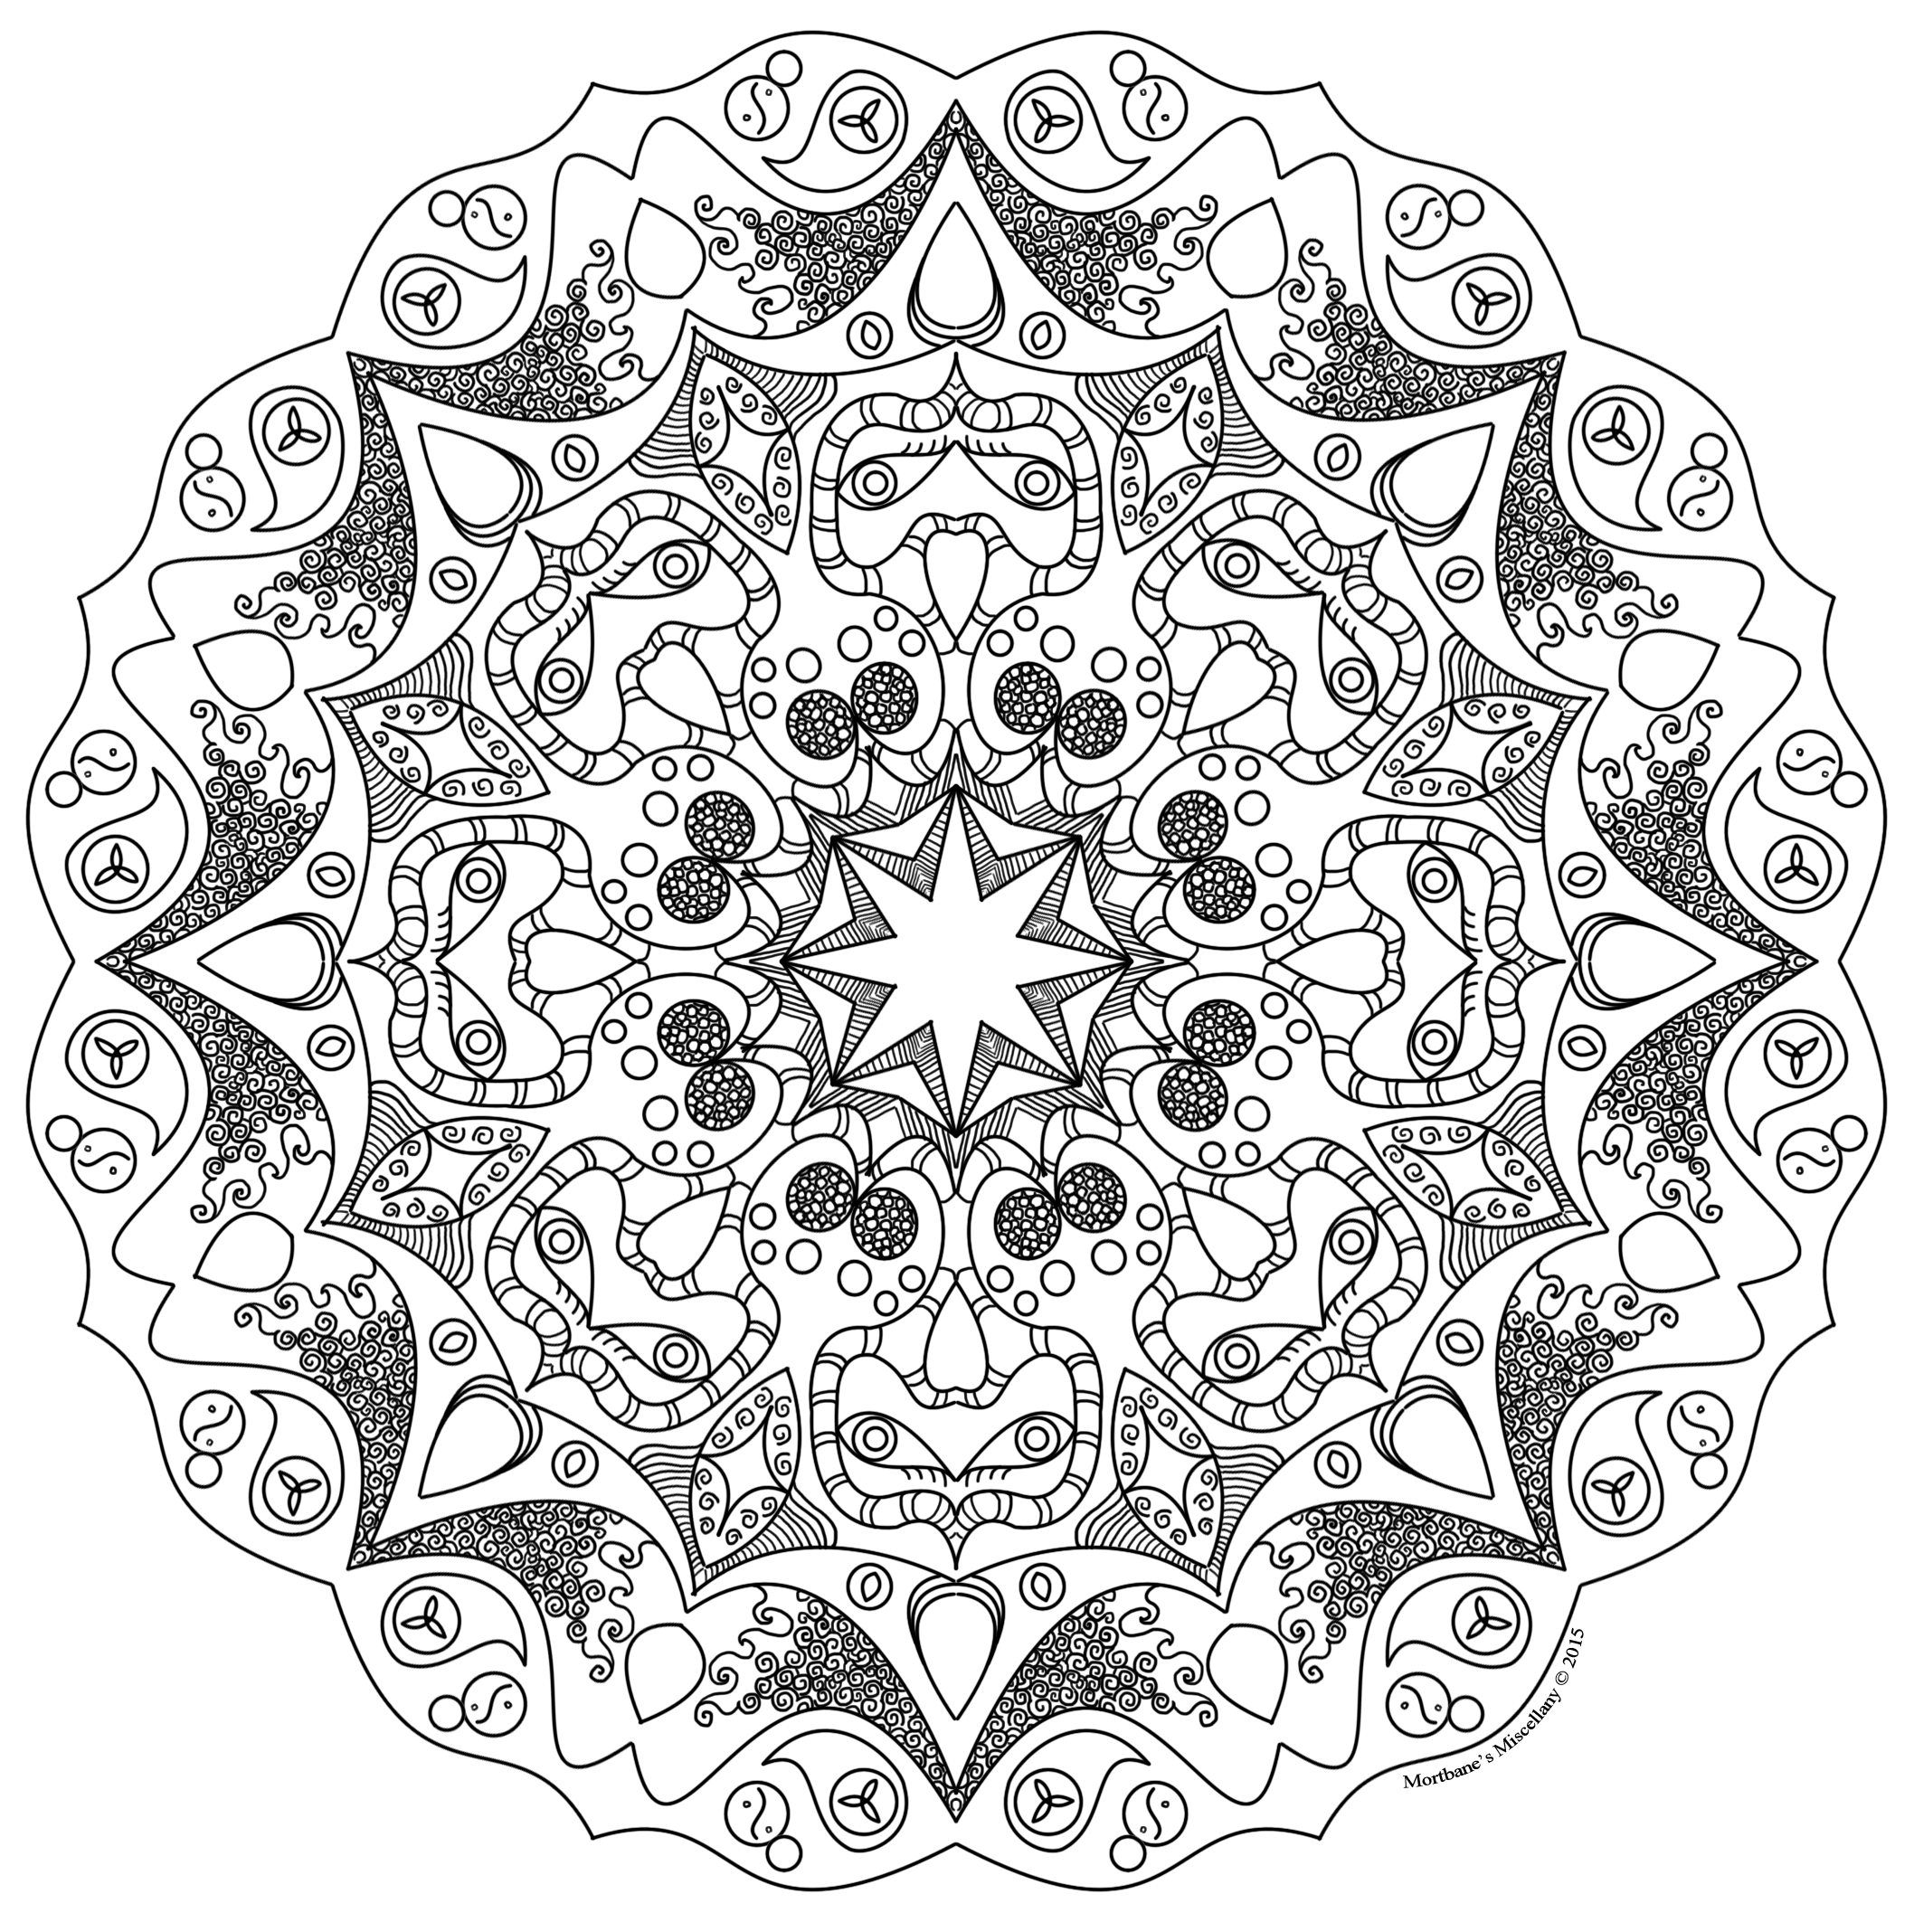 abstract coloring pages with words | Free Coloring Pages – Late 2 Bloom